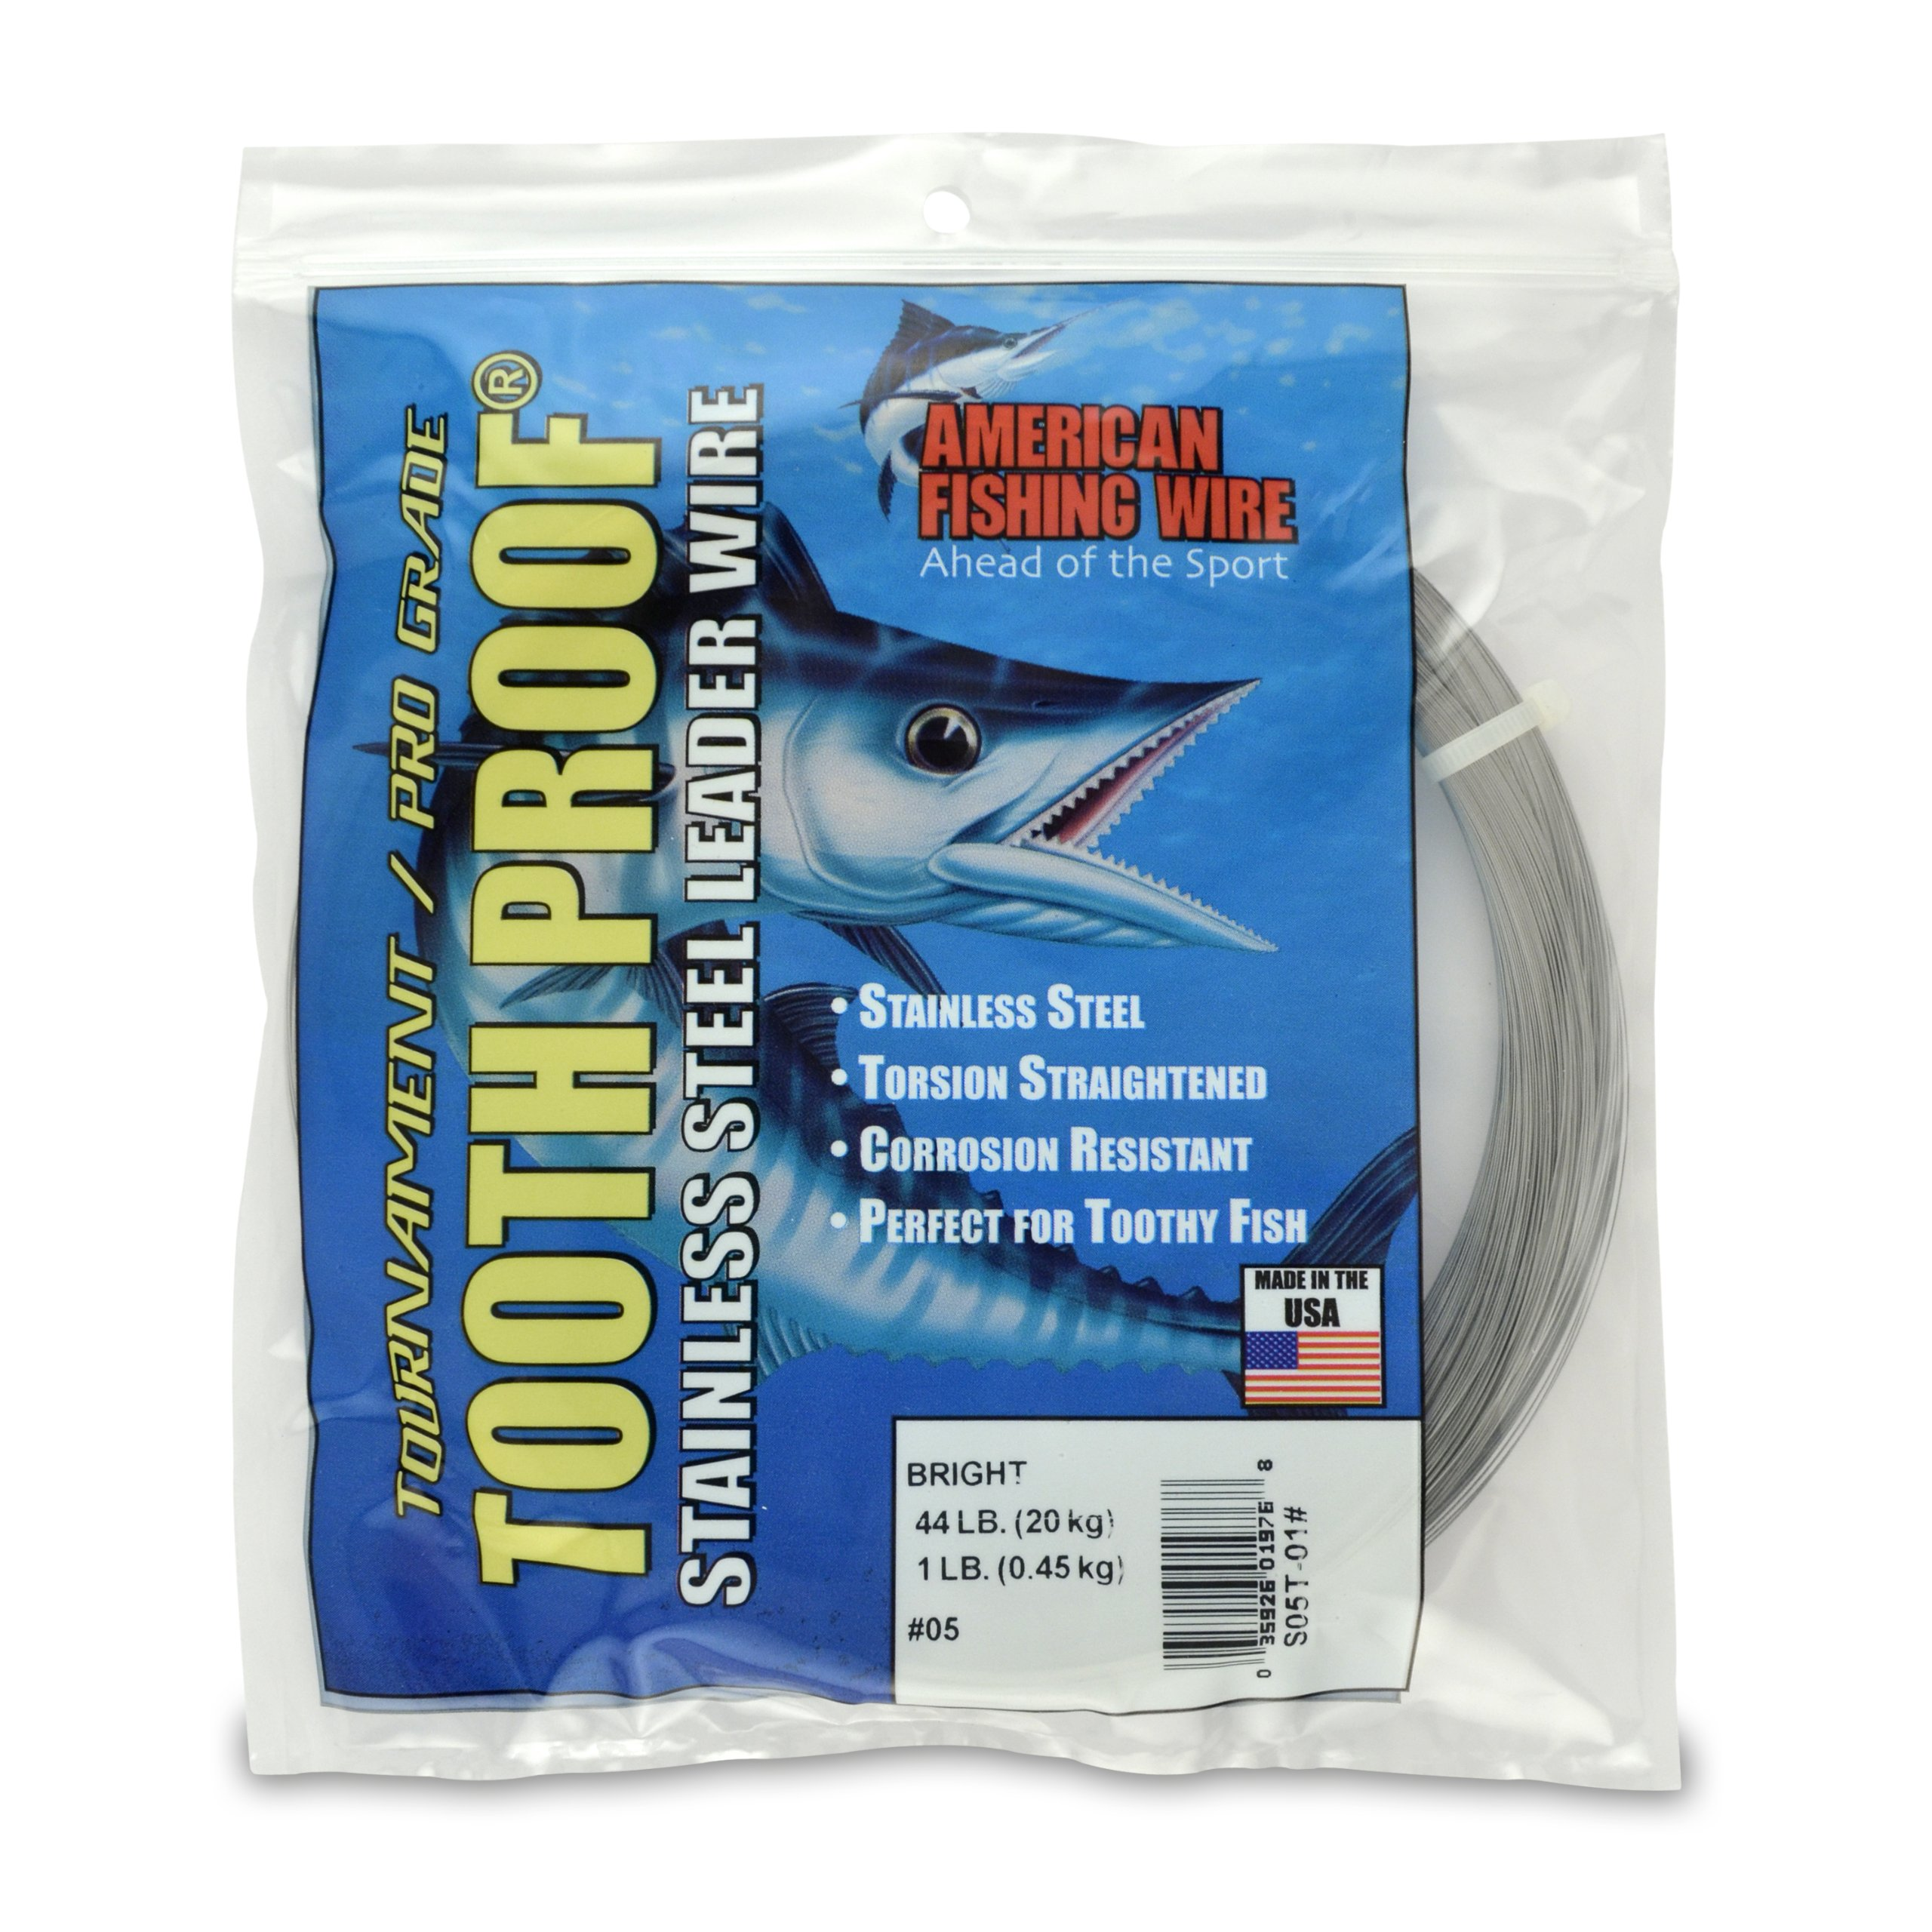 American Fishing Wire Tooth Proof Stainless Steel Single Strand Leader Wire, Size 5, Bright Color, 44 Pound Test, 1 Pound Coil